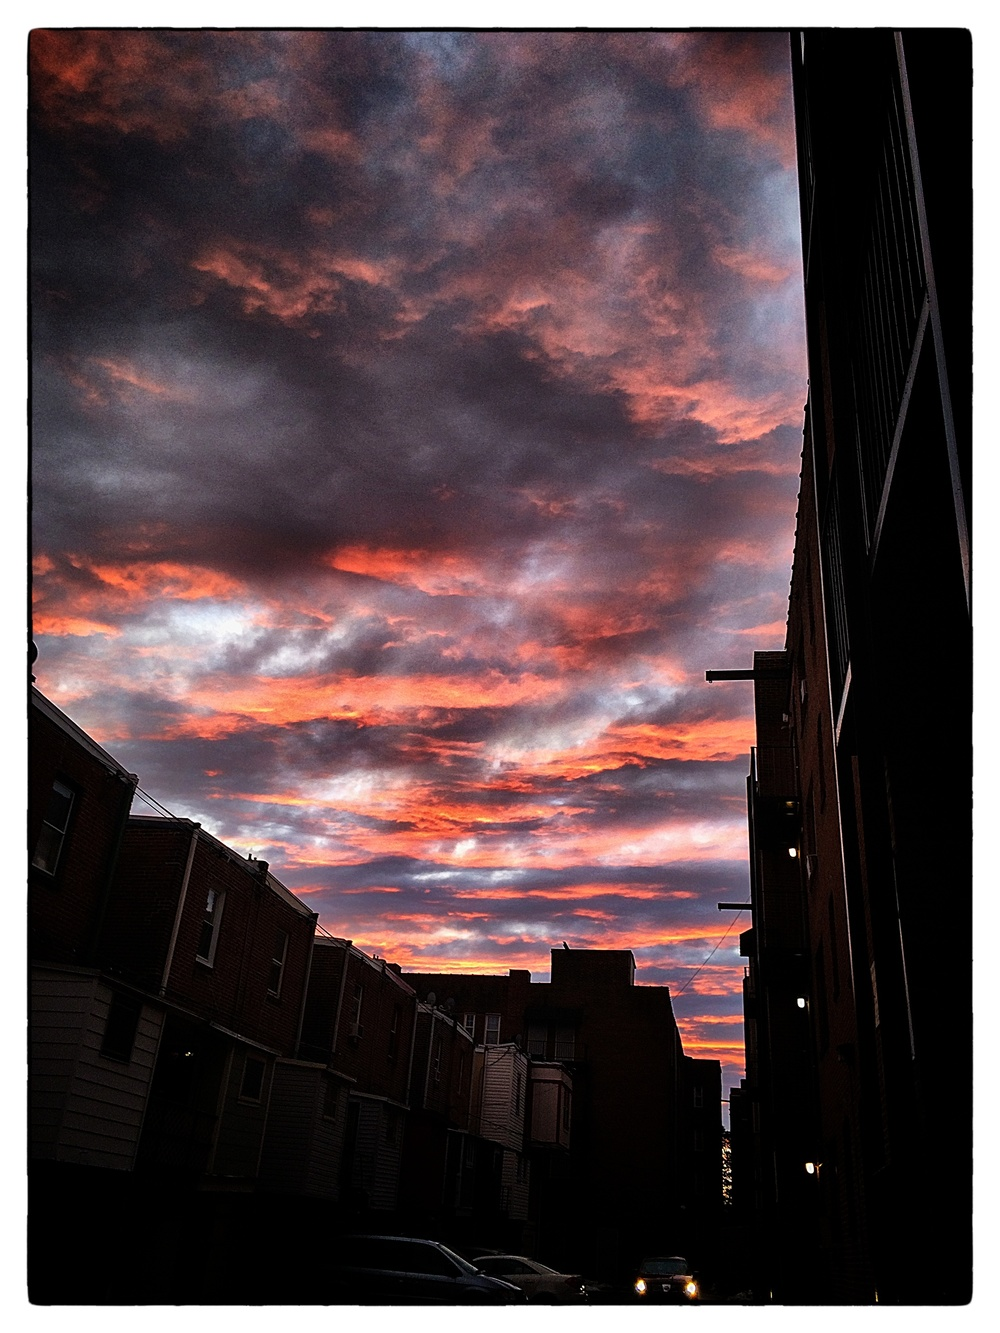 Sunset over back alley, shot February 21, 2014, in Philadelphia.